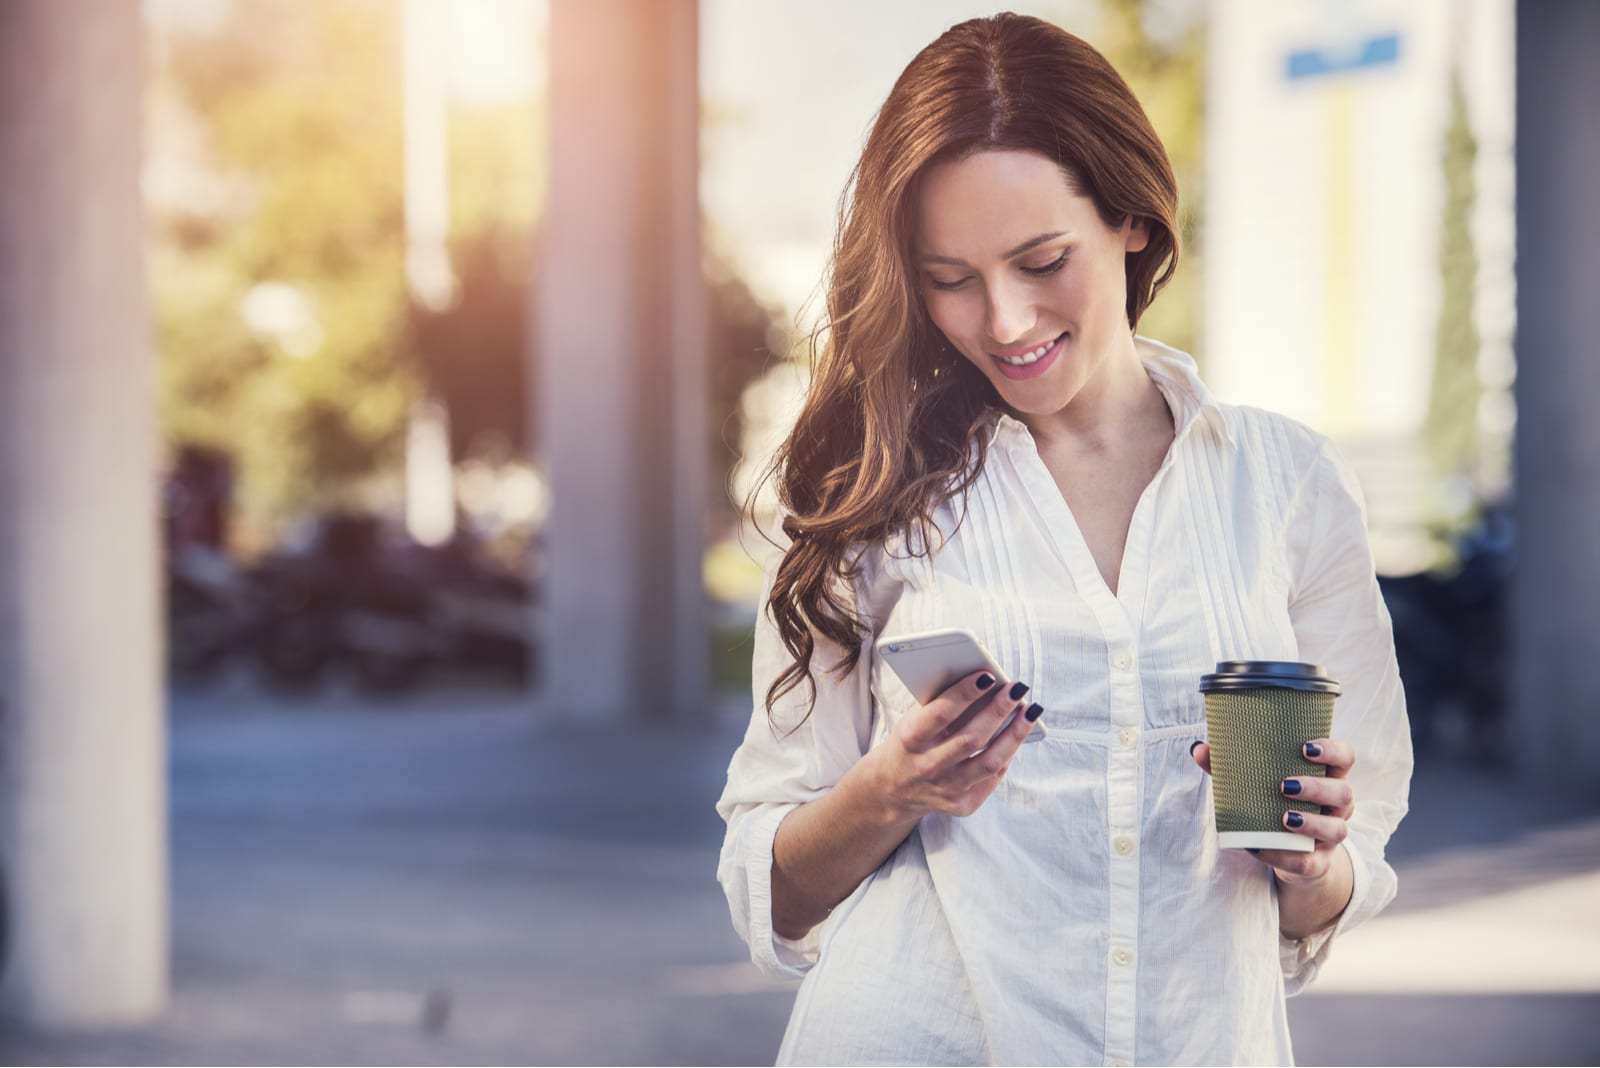 beautiful smiling brunette uses a smartphone